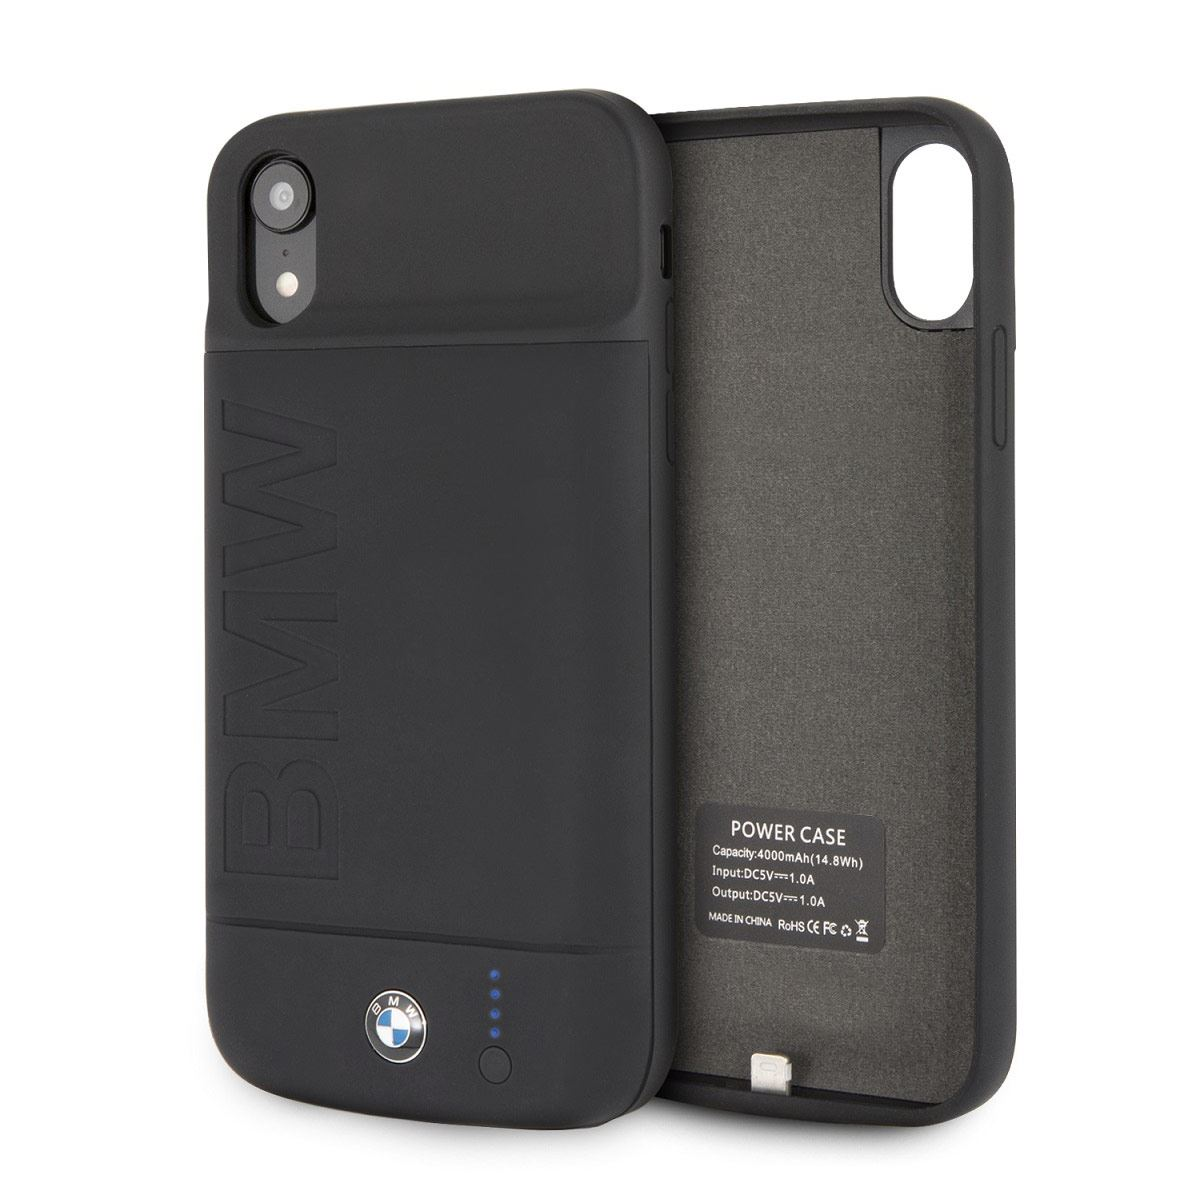 Funda con Batería 3600MHA para iPhone XR Negro BMW